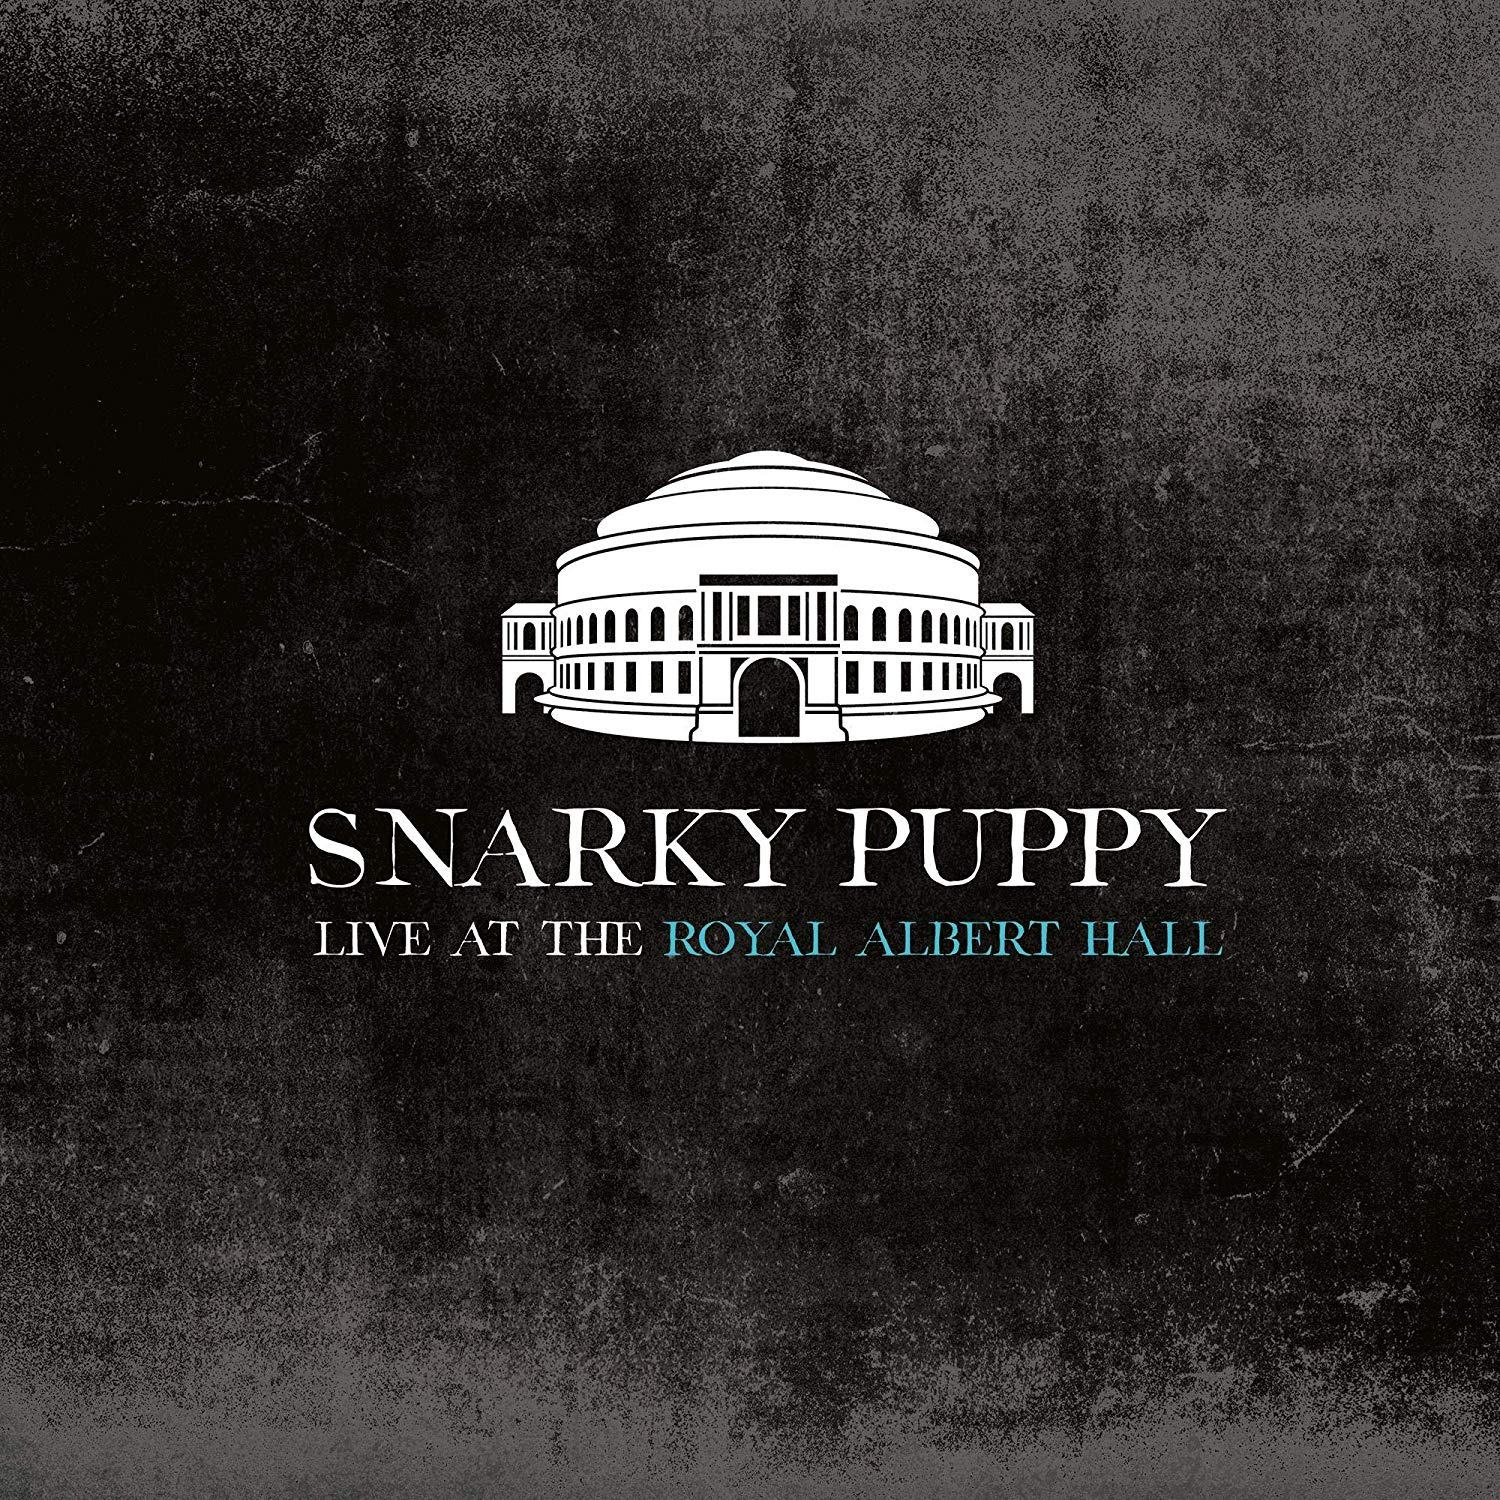 SNARKY PUPPY - Live at Royal Albert Hall cover